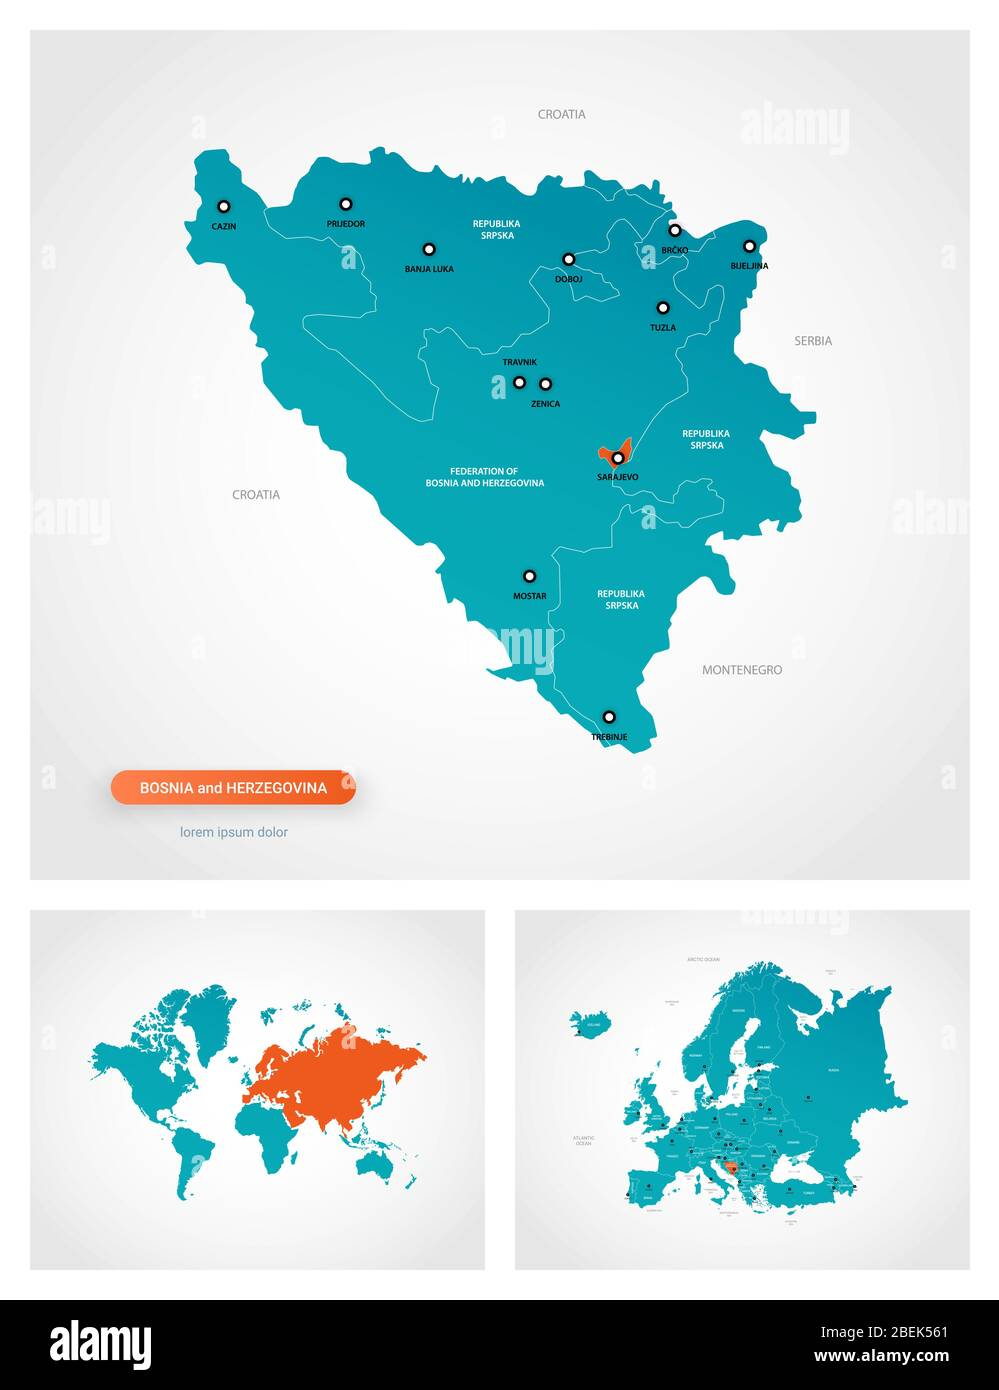 Editable Template Of Map Of Bosnia And Herzegovina With Marks Bosnia And Herzegovina On World Map And On Europe Map Stock Vector Image Art Alamy